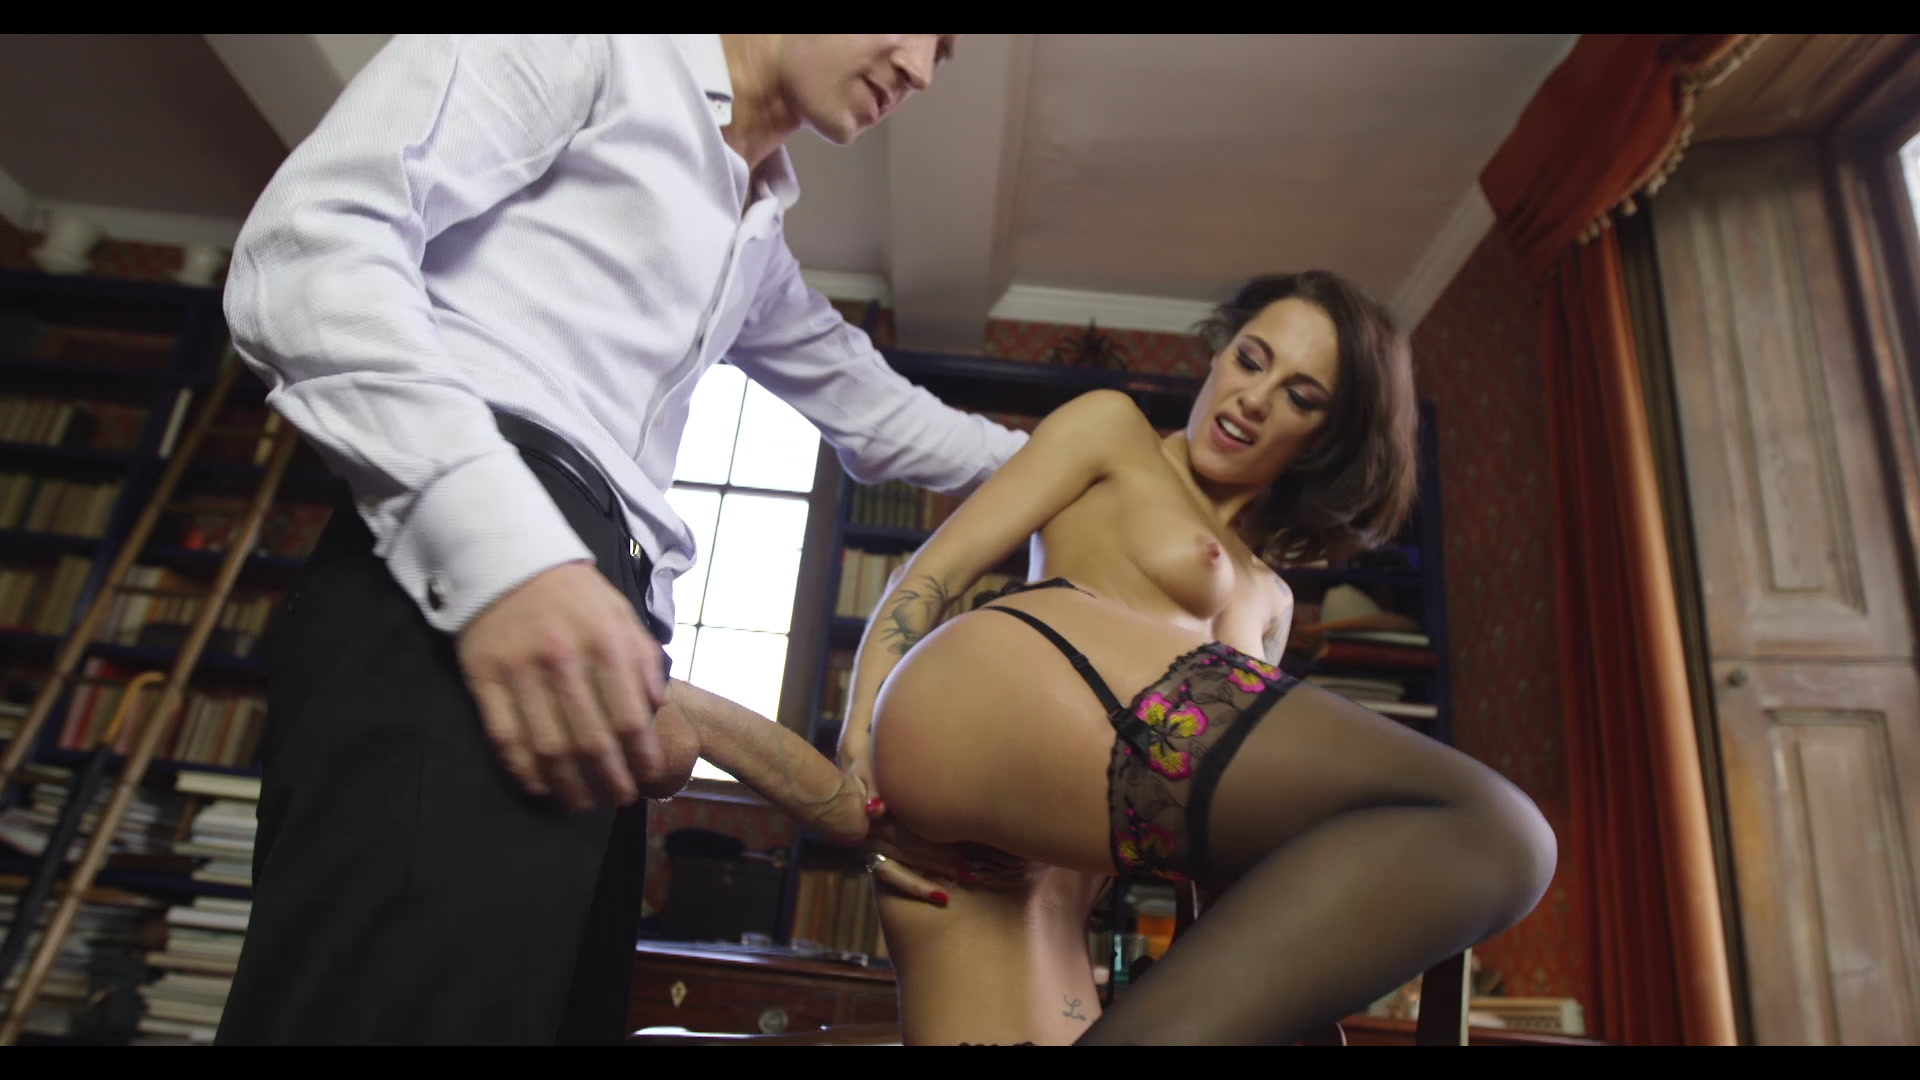 Scene with Nikita Belluci - image 14 out of 20